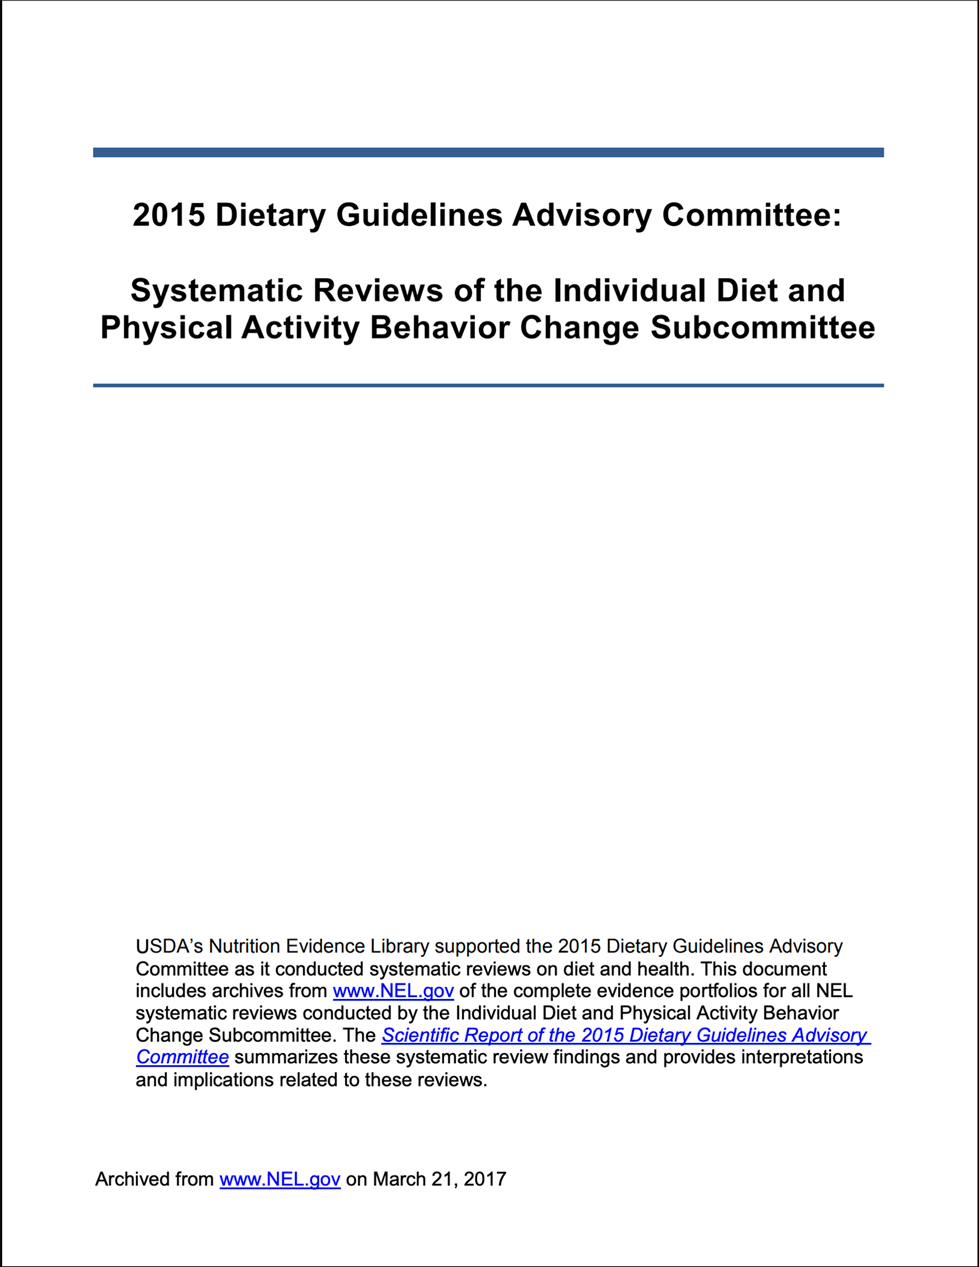 2015-Individual-Diet-and-Physical-Activity-Behavior-Change-Subcommittee.png